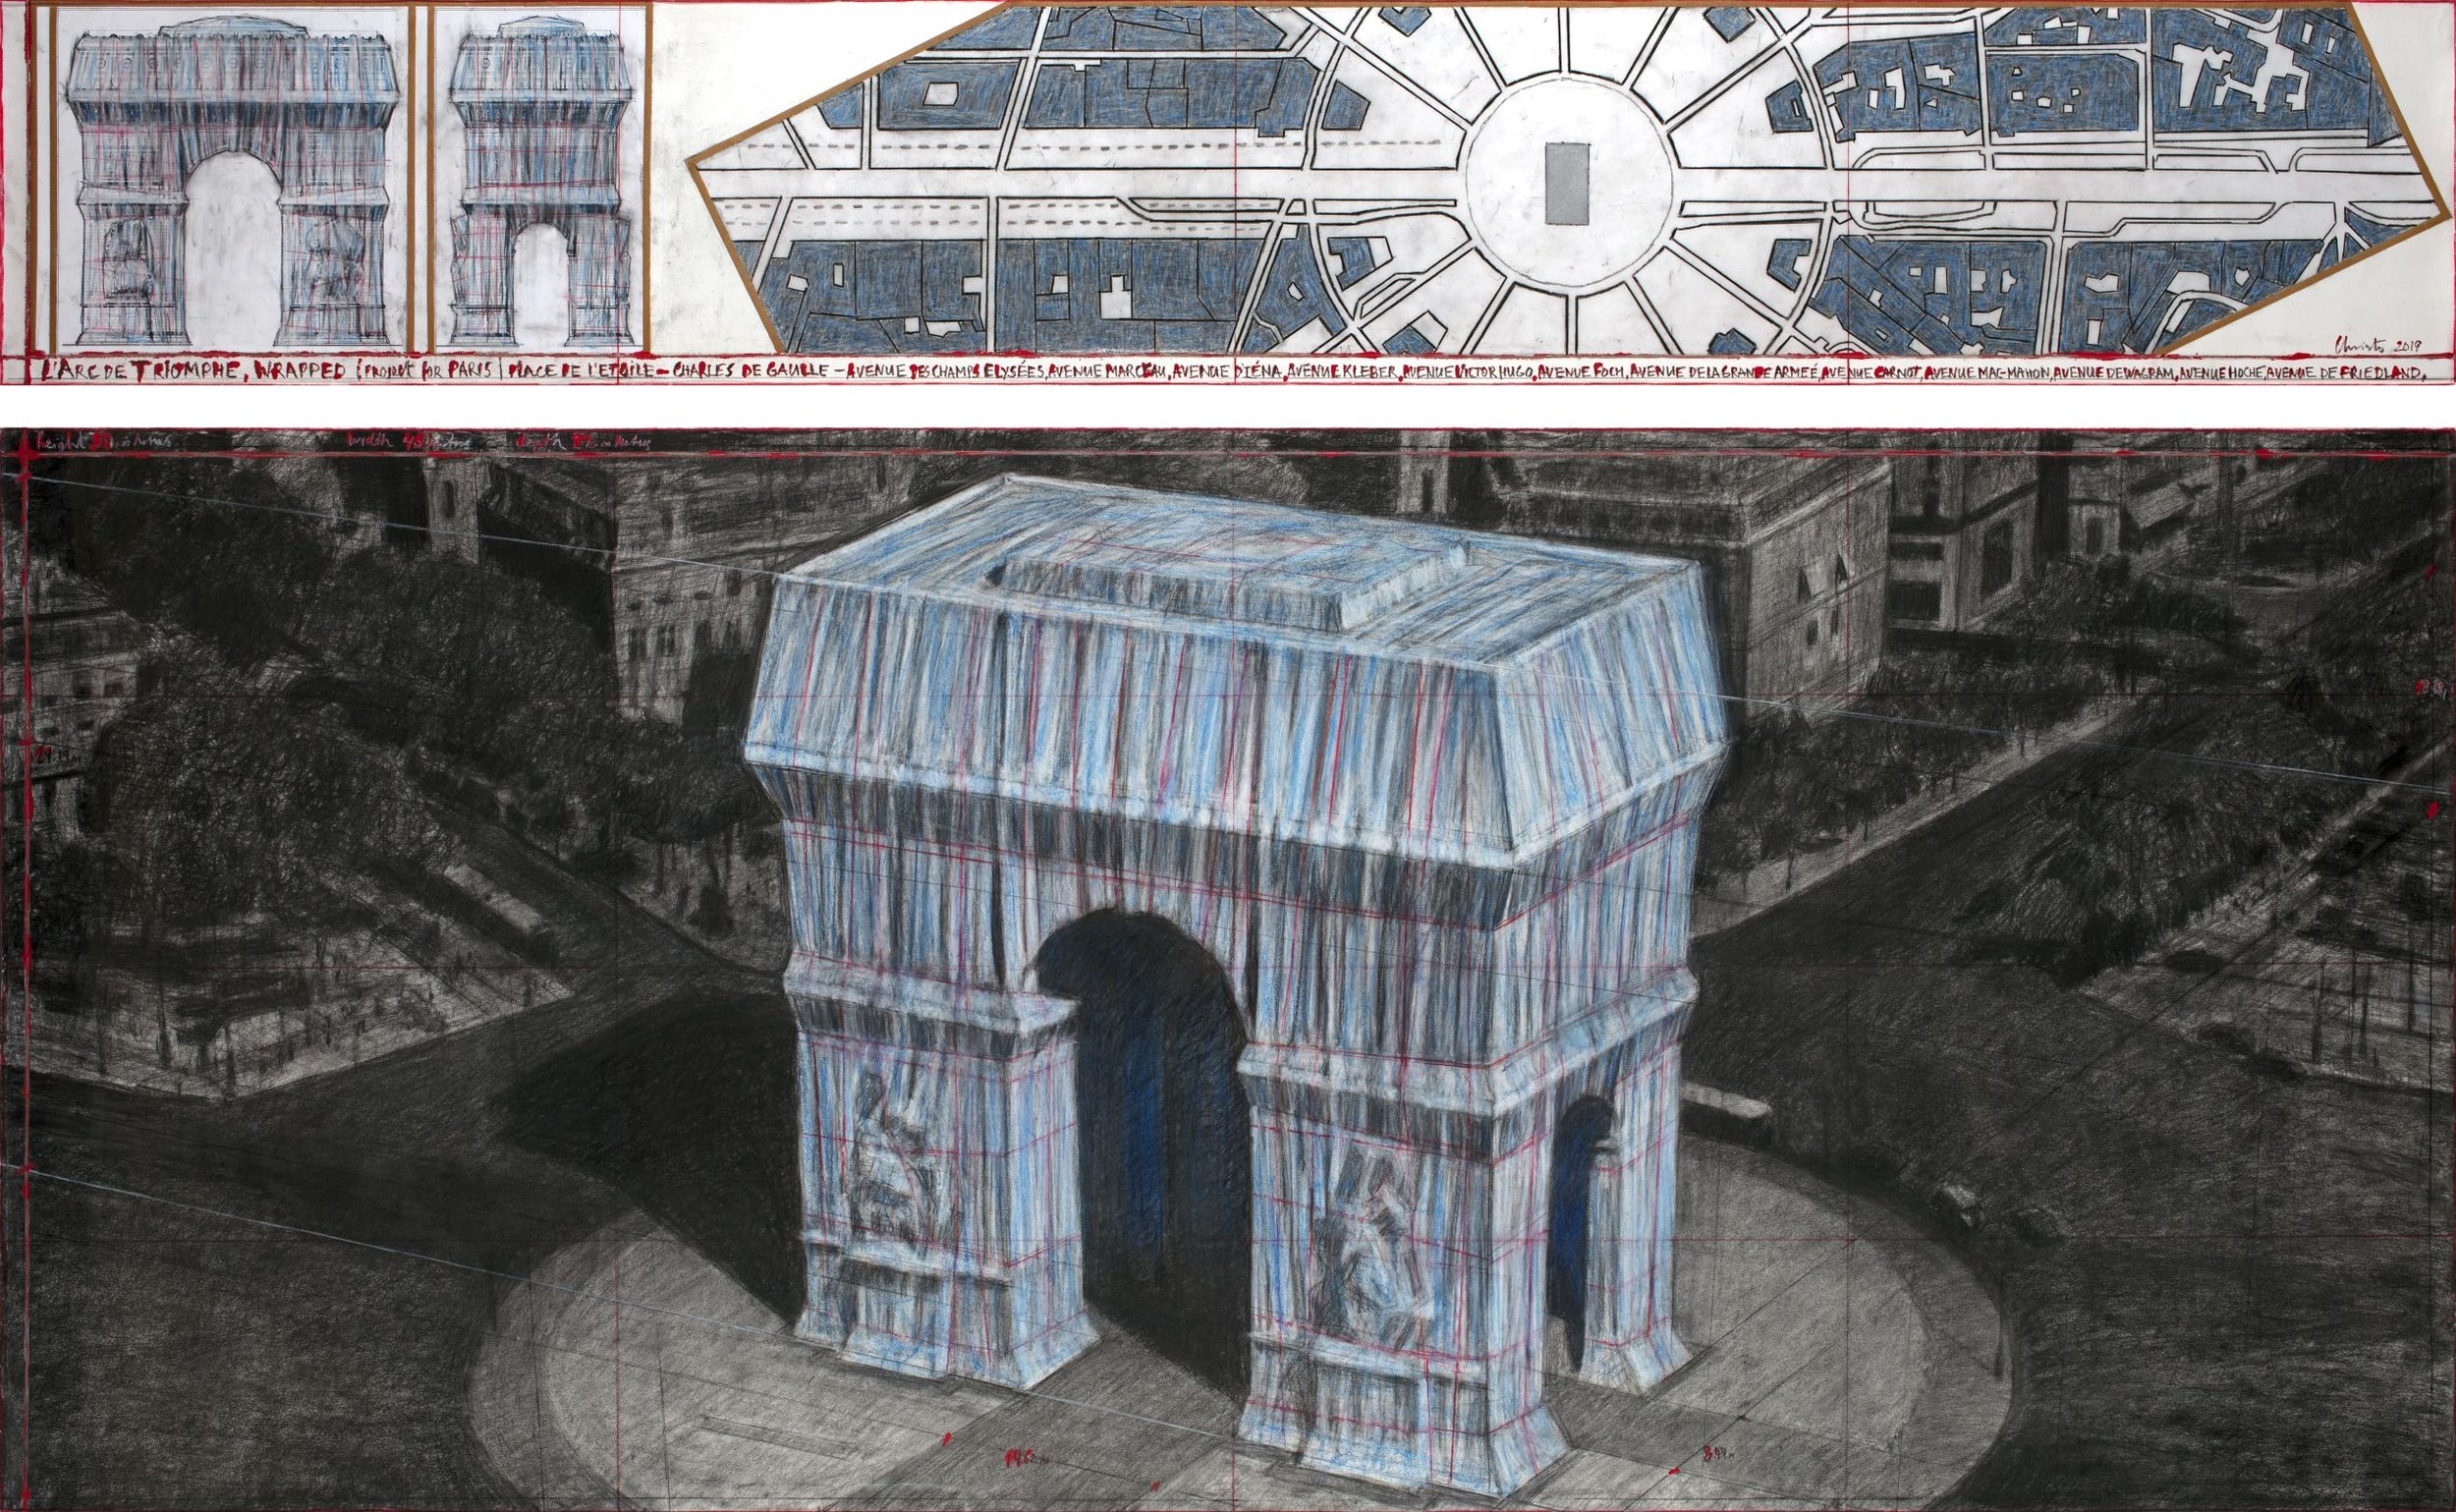 "Christo, L'Arc de Triomphe, Wrapped (Project for Paris) Place de l'Etoile – Charles de Gaulle, Drawing 2019 in two parts, 15 x 96"" and 42 x 96"" (38 x 244 cm and 106.6 x 244 cm), Pencil, charcoal, pastel, wax crayon, enamel paint, architectural and topographic survey, hand-drawn map on vellum and tape. Photo: André Grossmann © 2019 Christo"